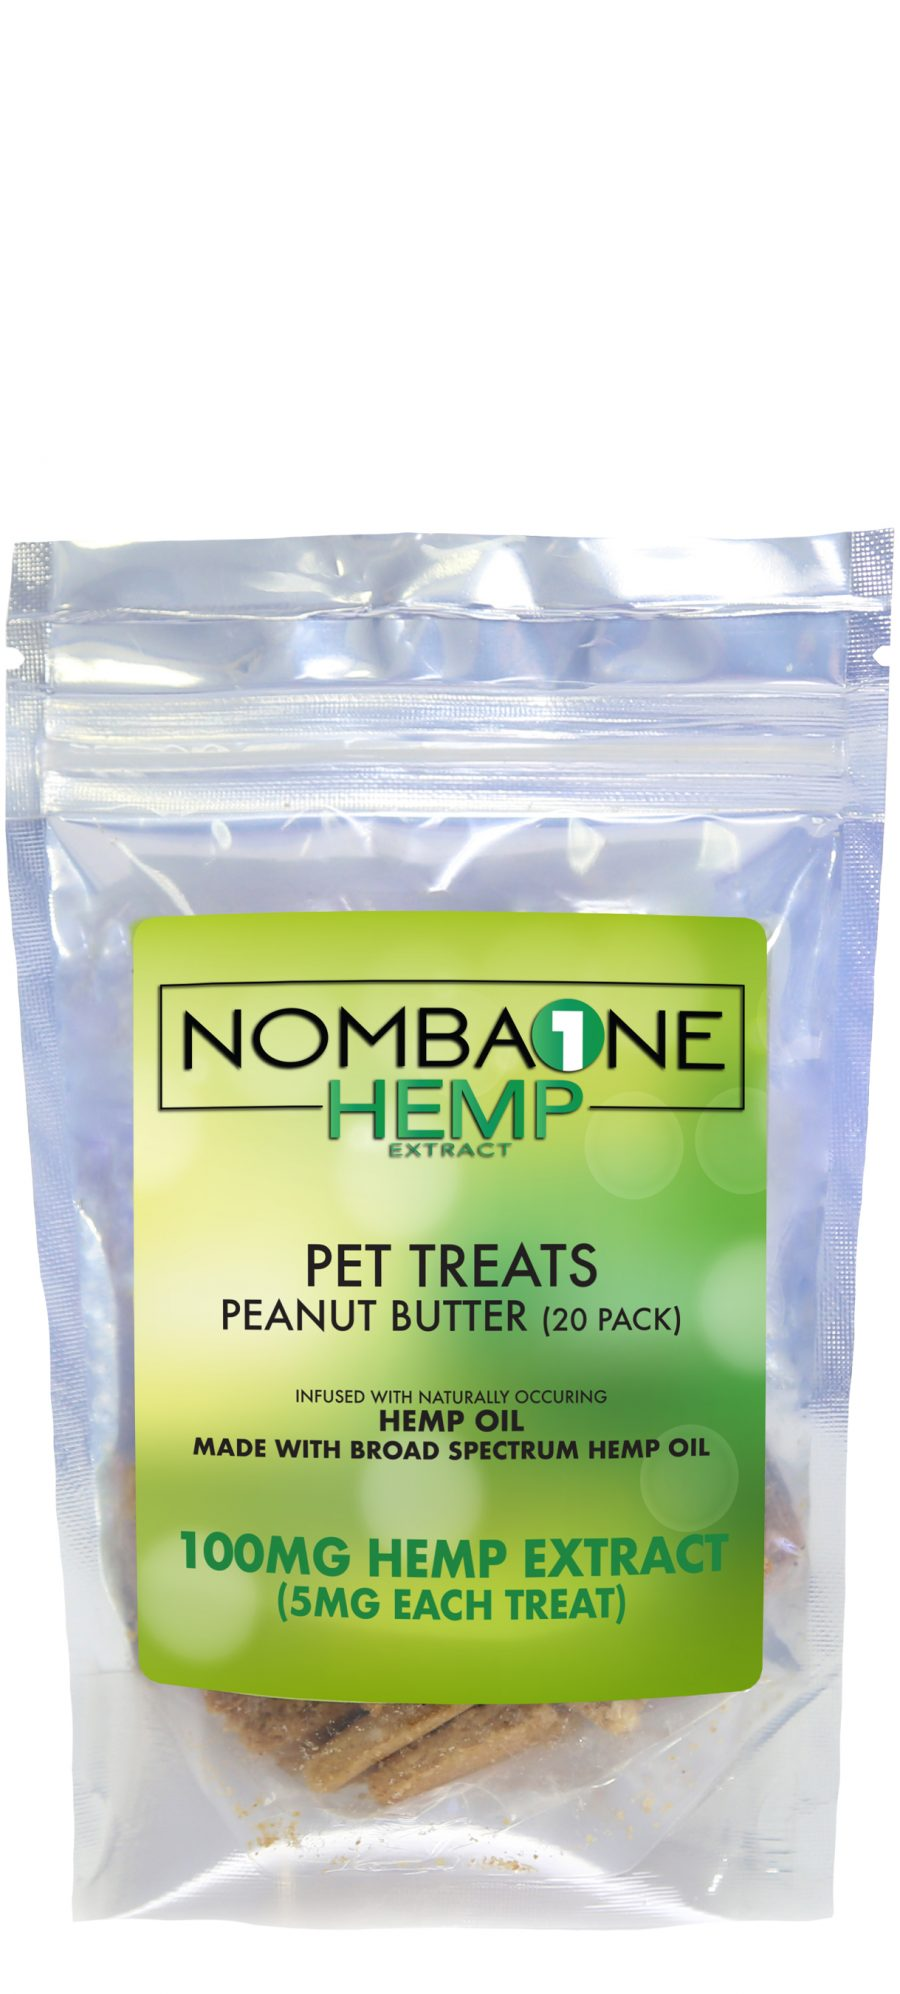 pet-treats-peanut-butter